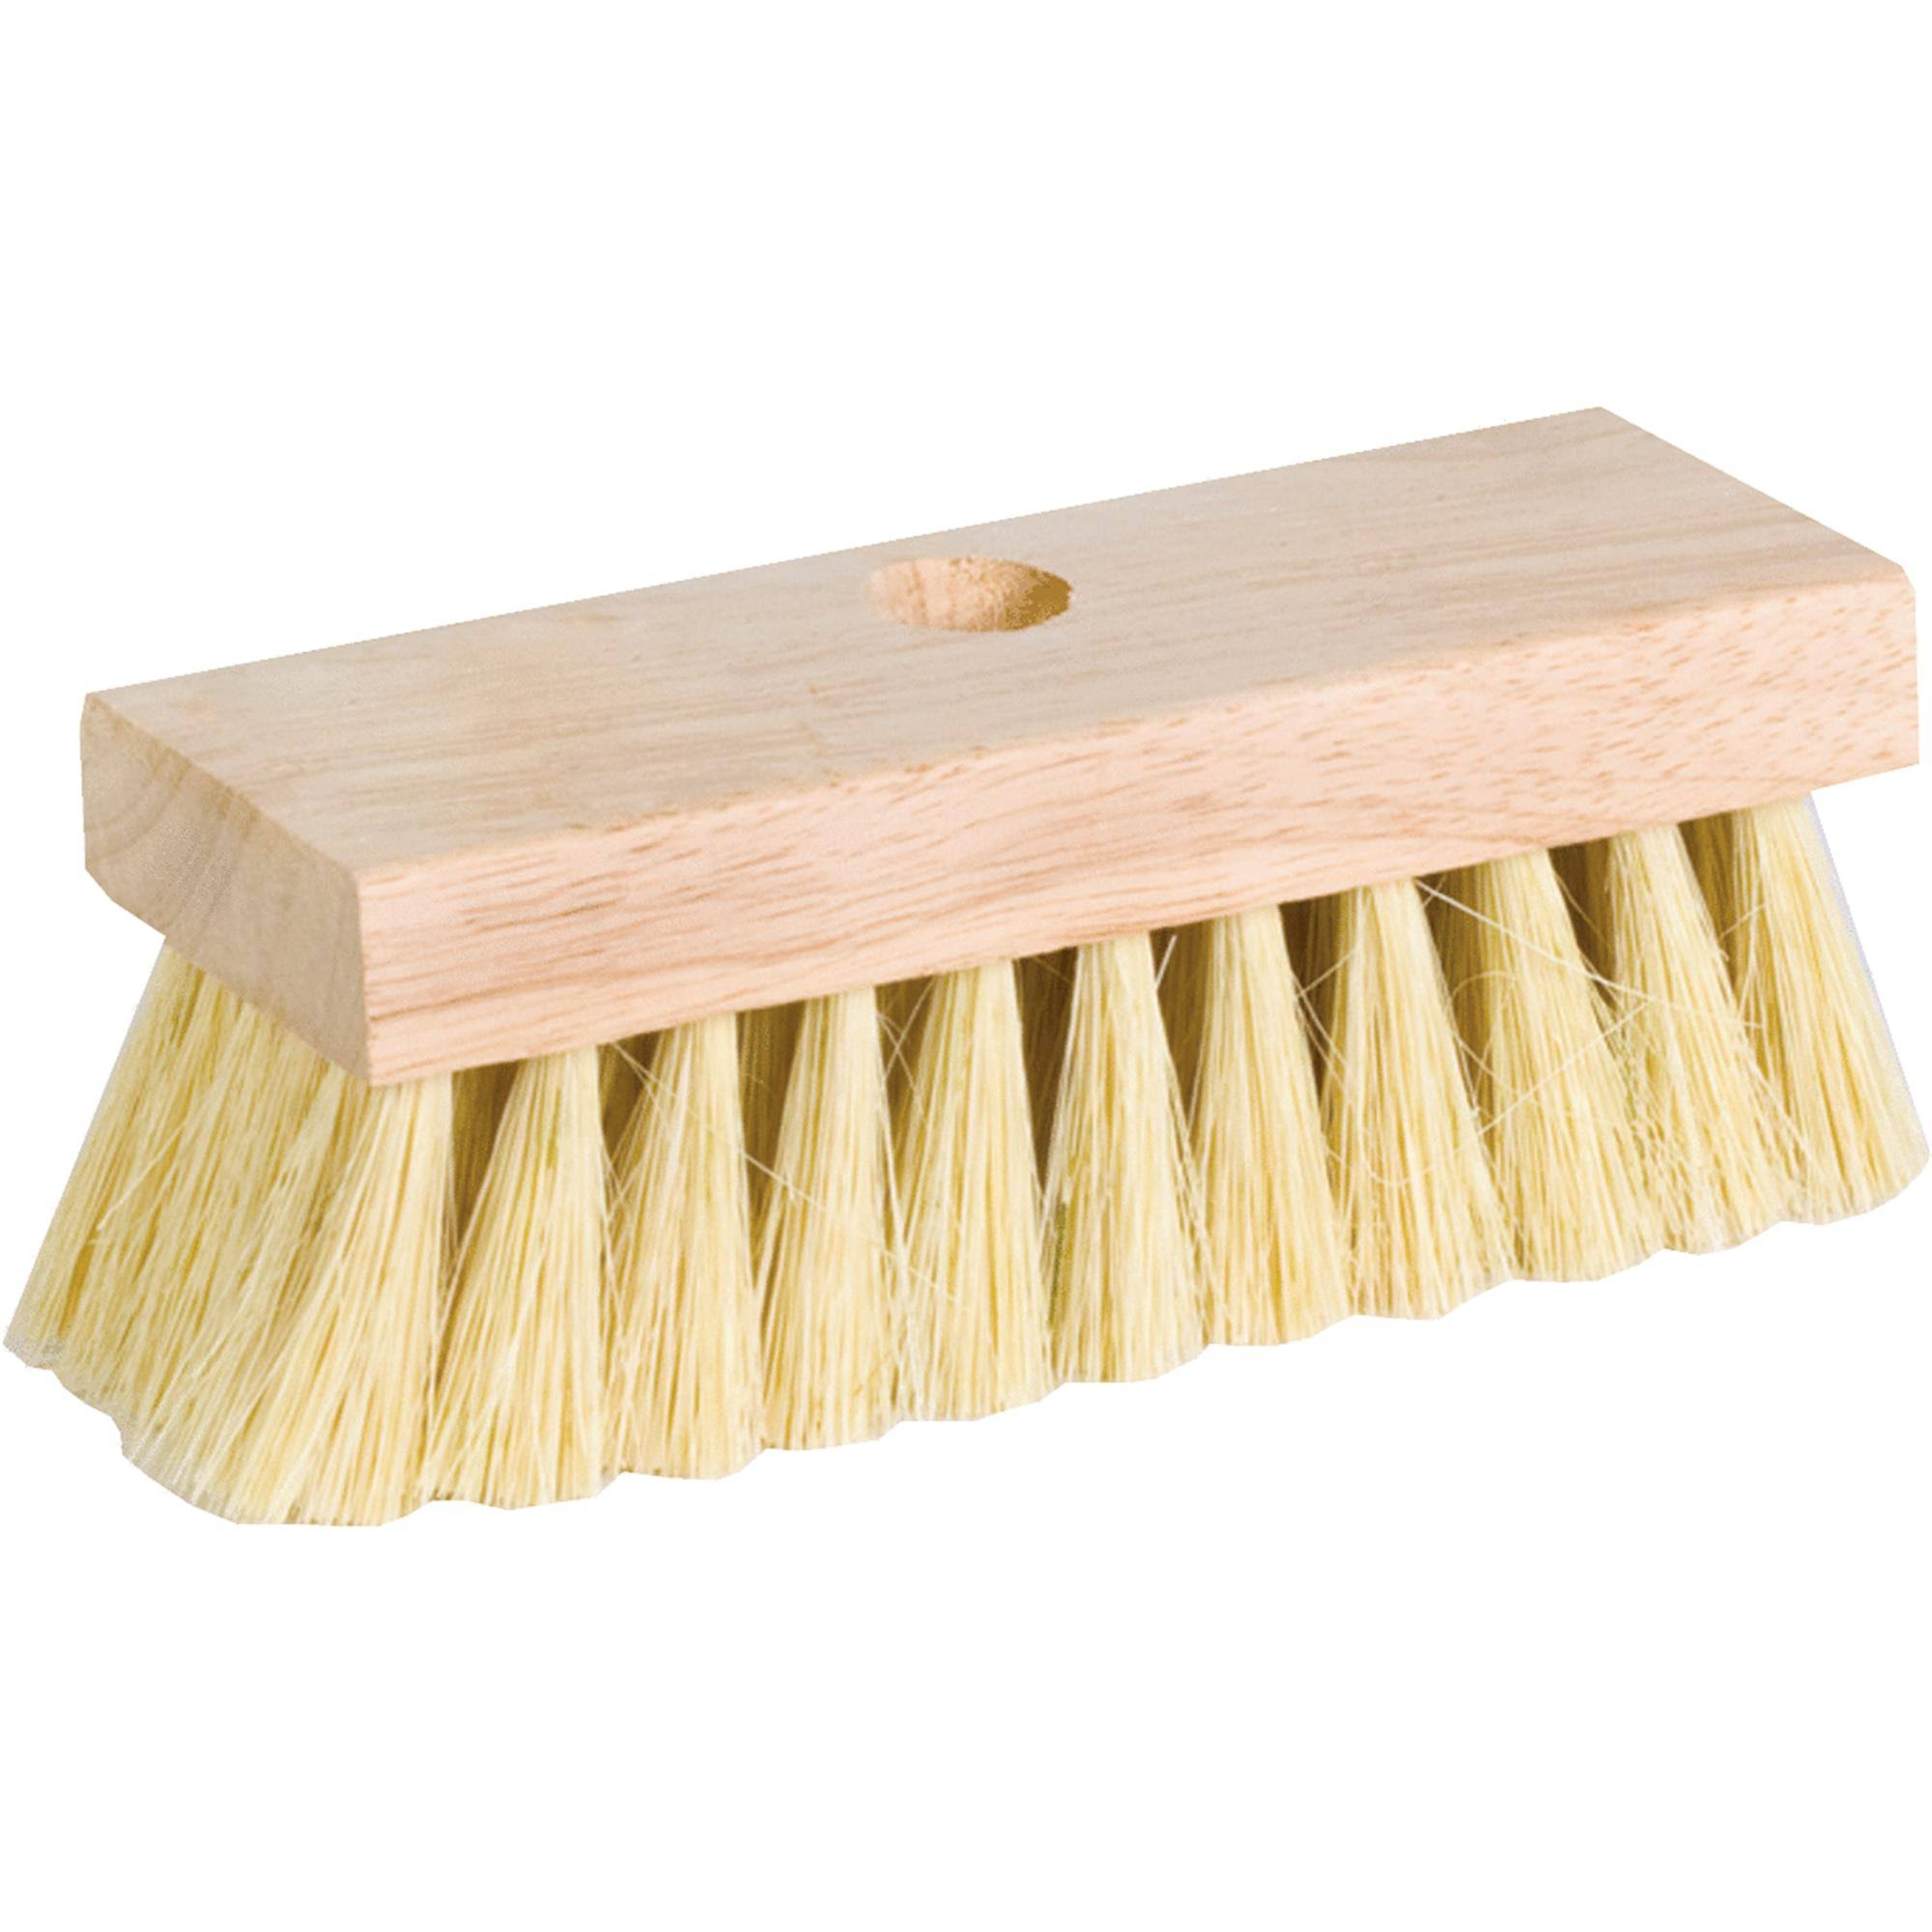 Dqb Industries Tapered Roof Brush